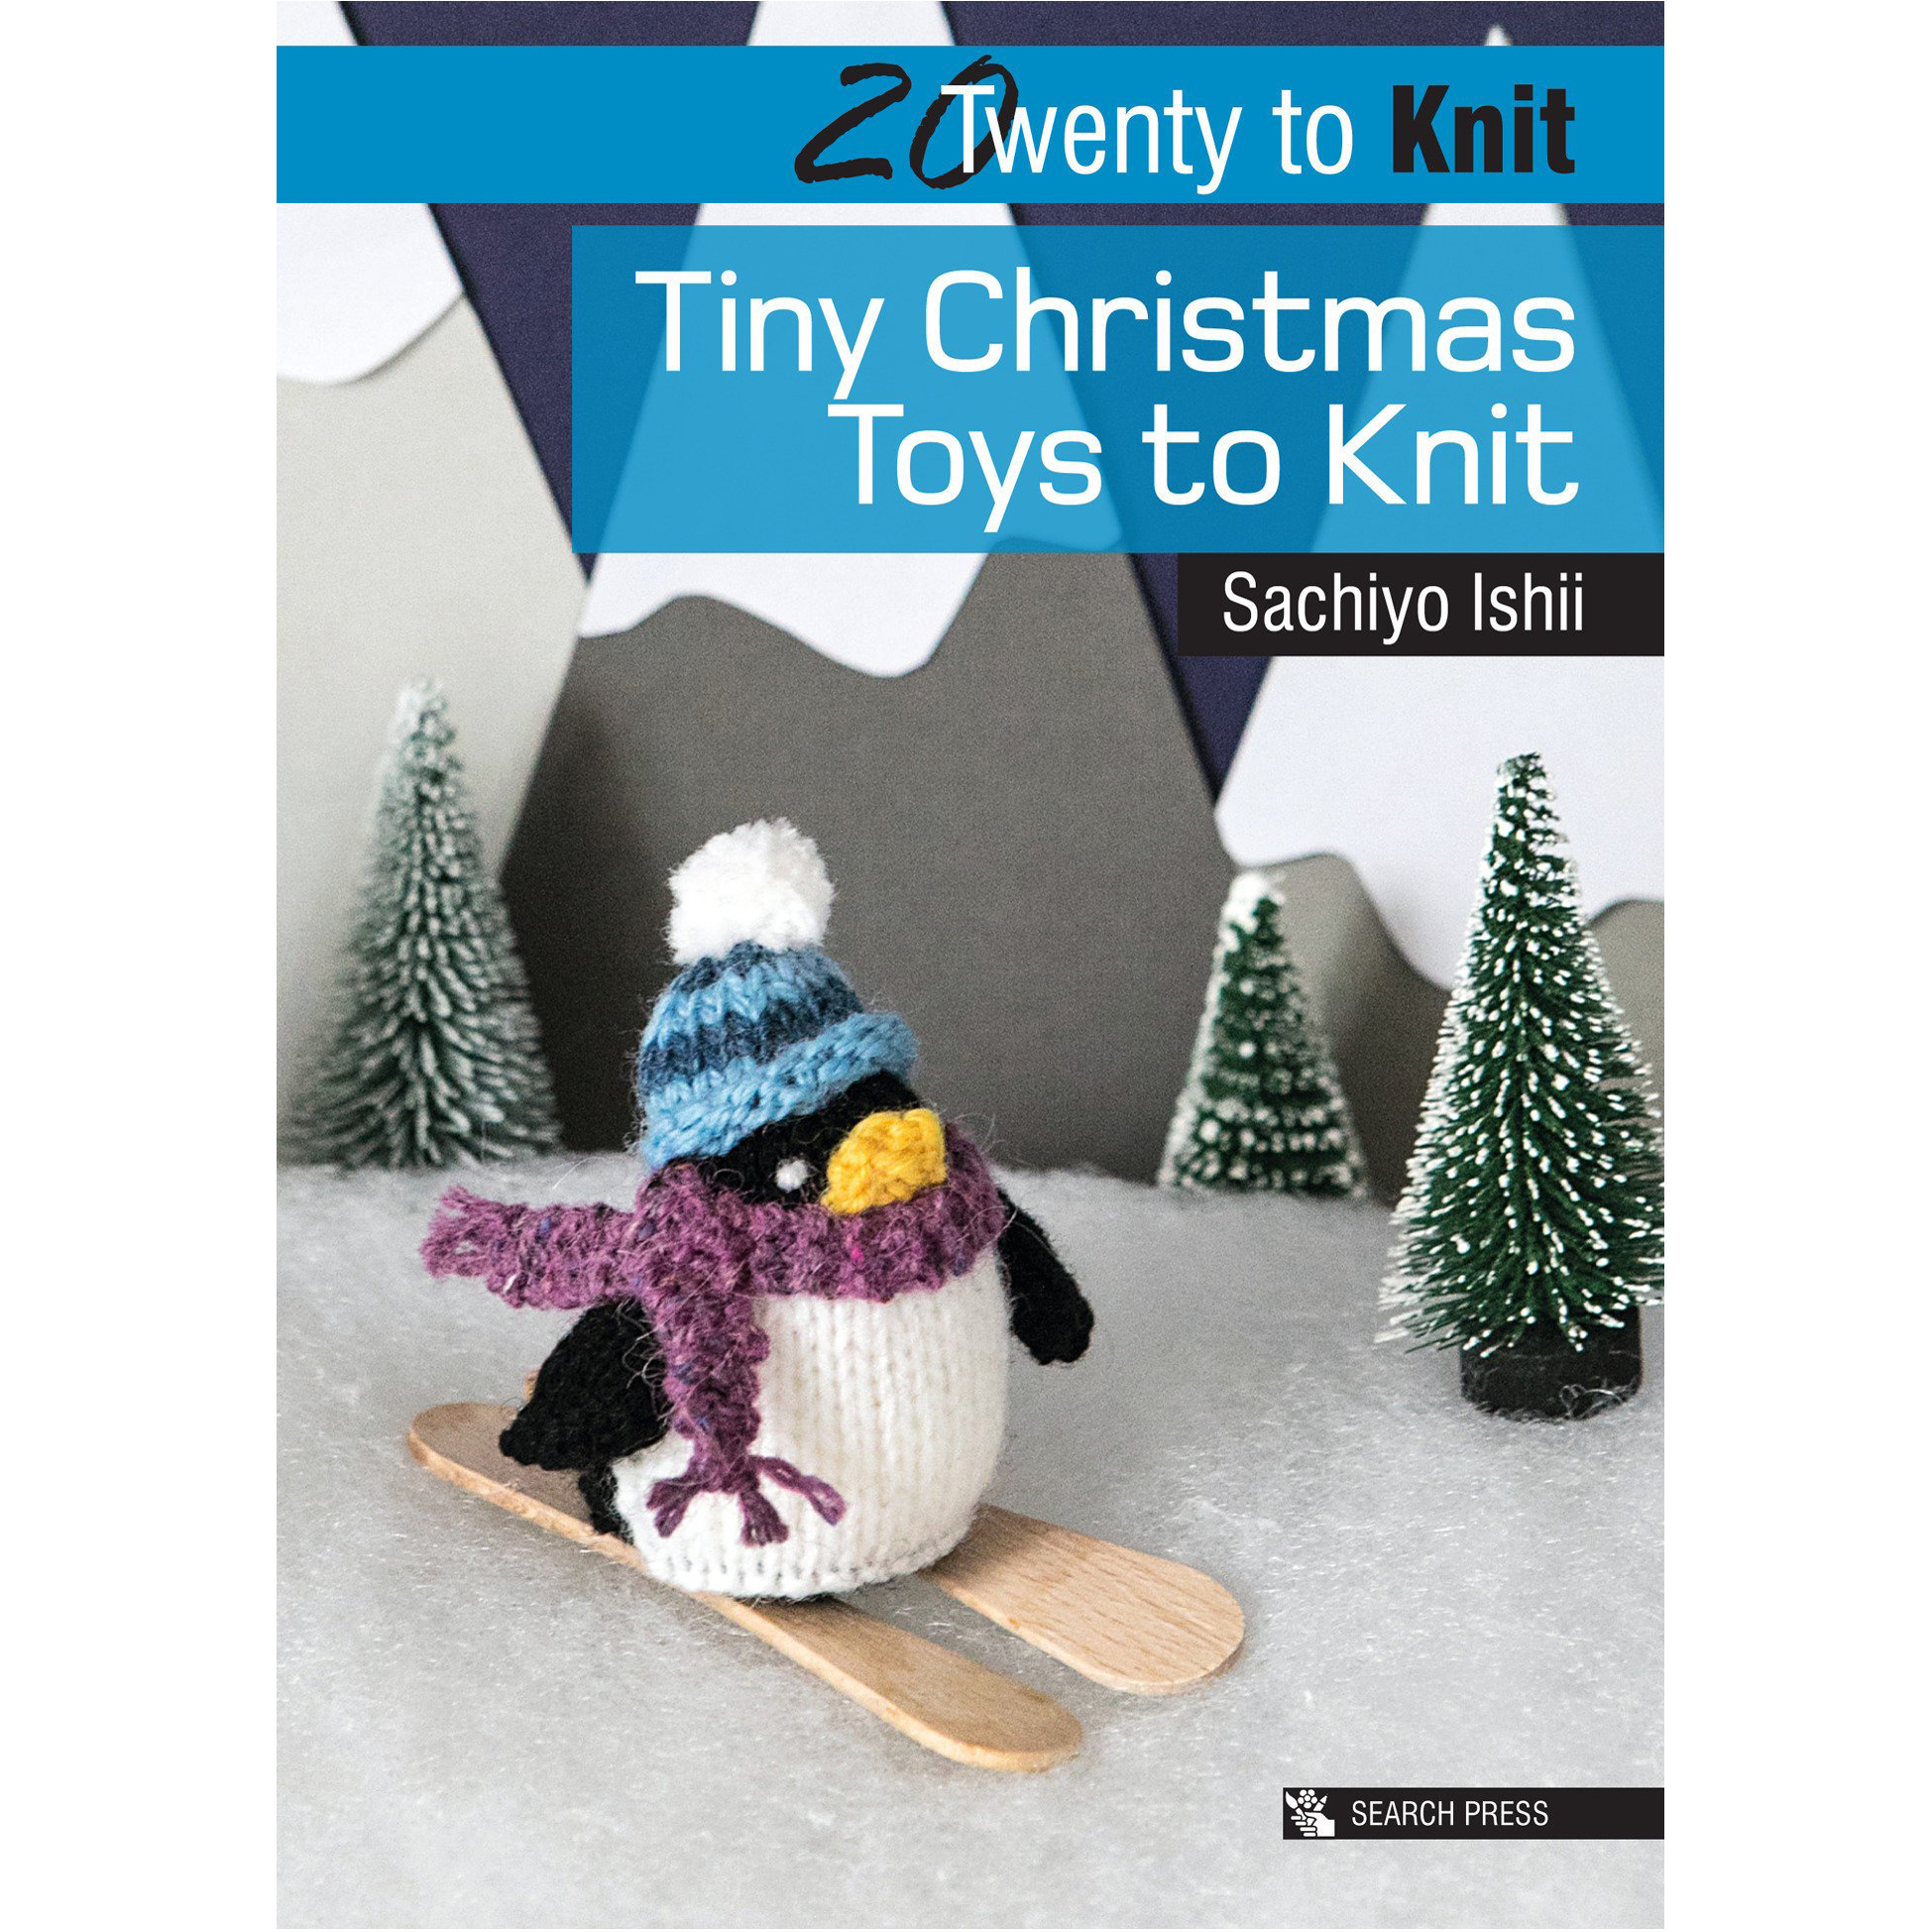 SPB93508/P8586 TINY CHRISTMAS TOYS TO CROCHET Detail Page